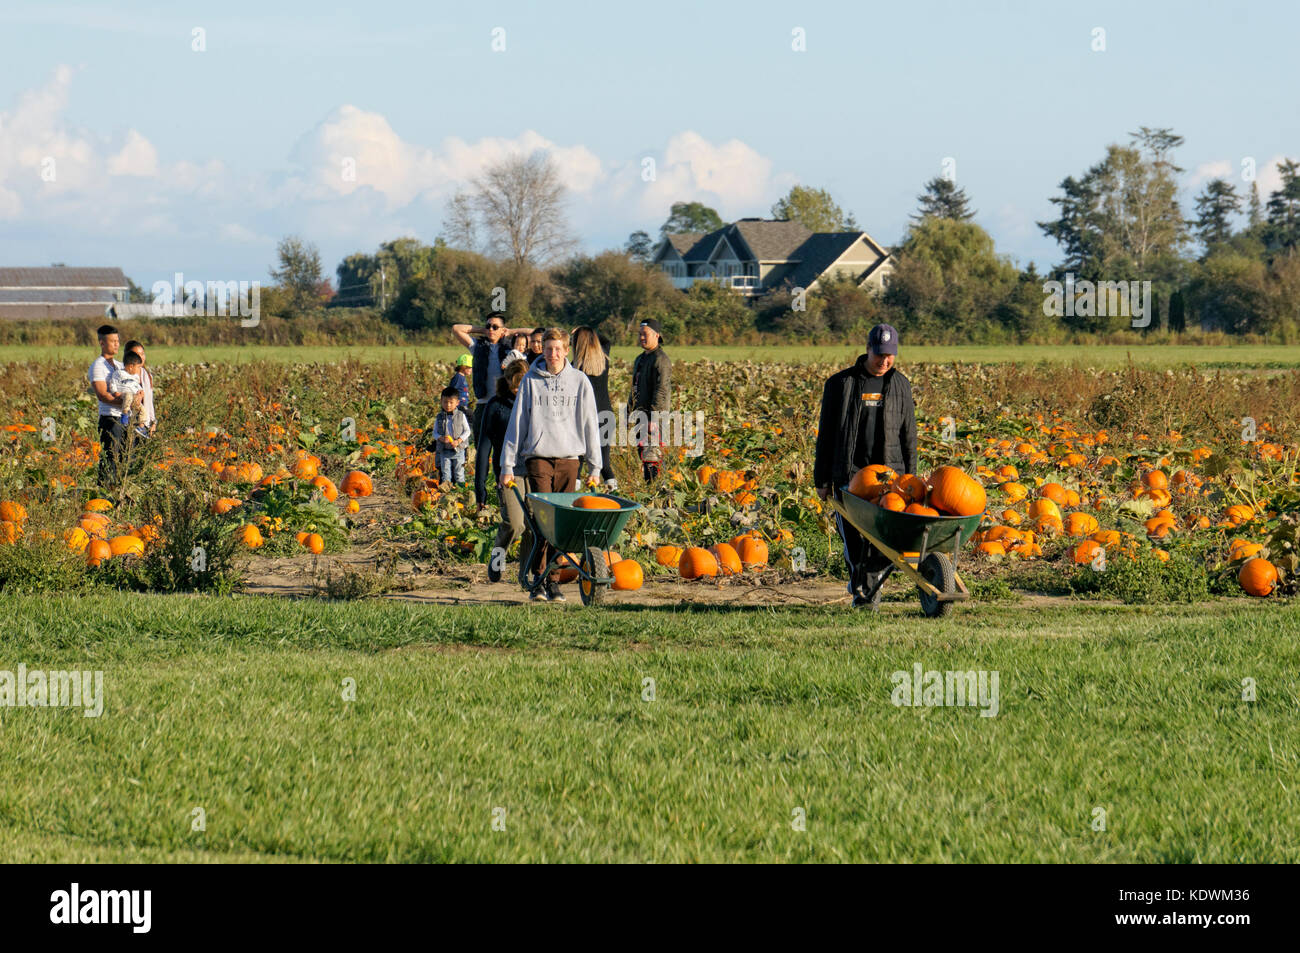 People pushing wheelbarrows full of pumpkins at Westham Island Herb Farm, Delta, British Columbia, Canada - Stock Image